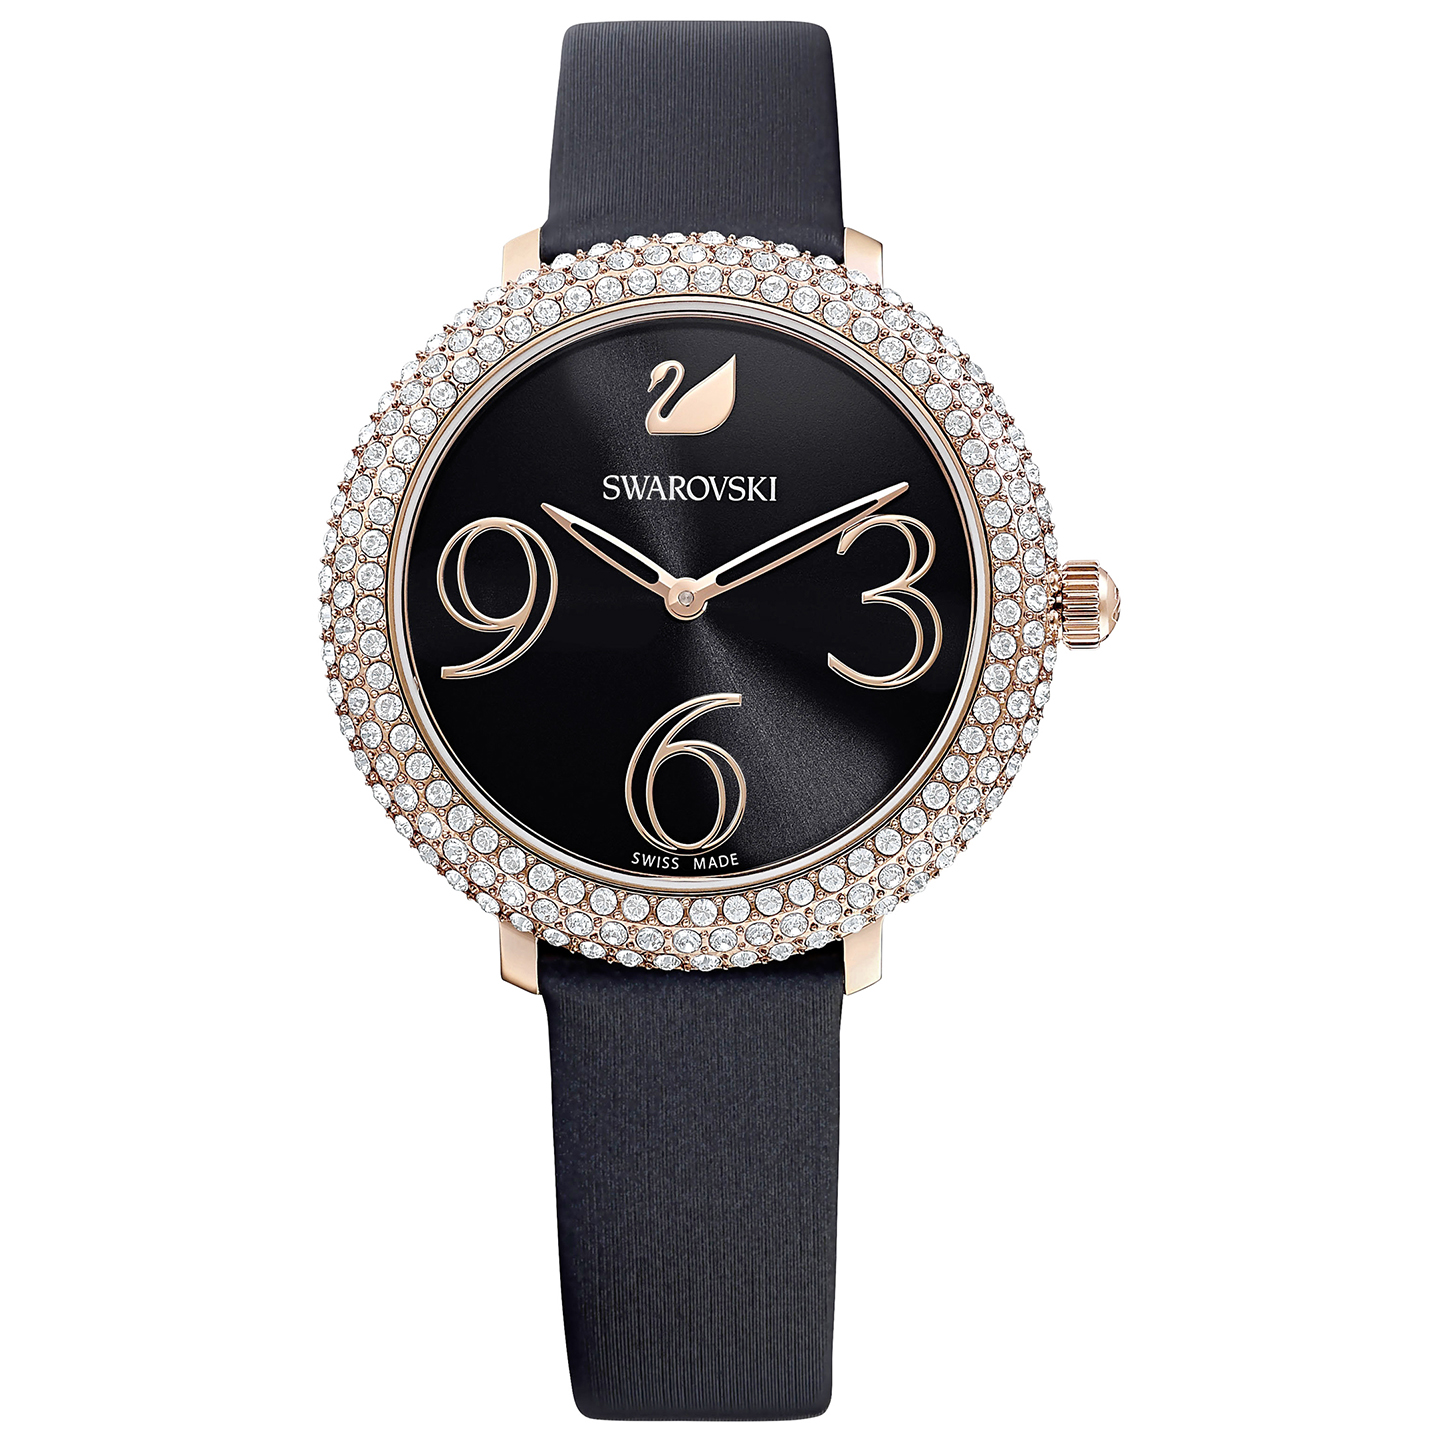 Swarovski Crystal Frost Watch - Leather Strap - Black - Rose-gold Tone PVD - 5484058